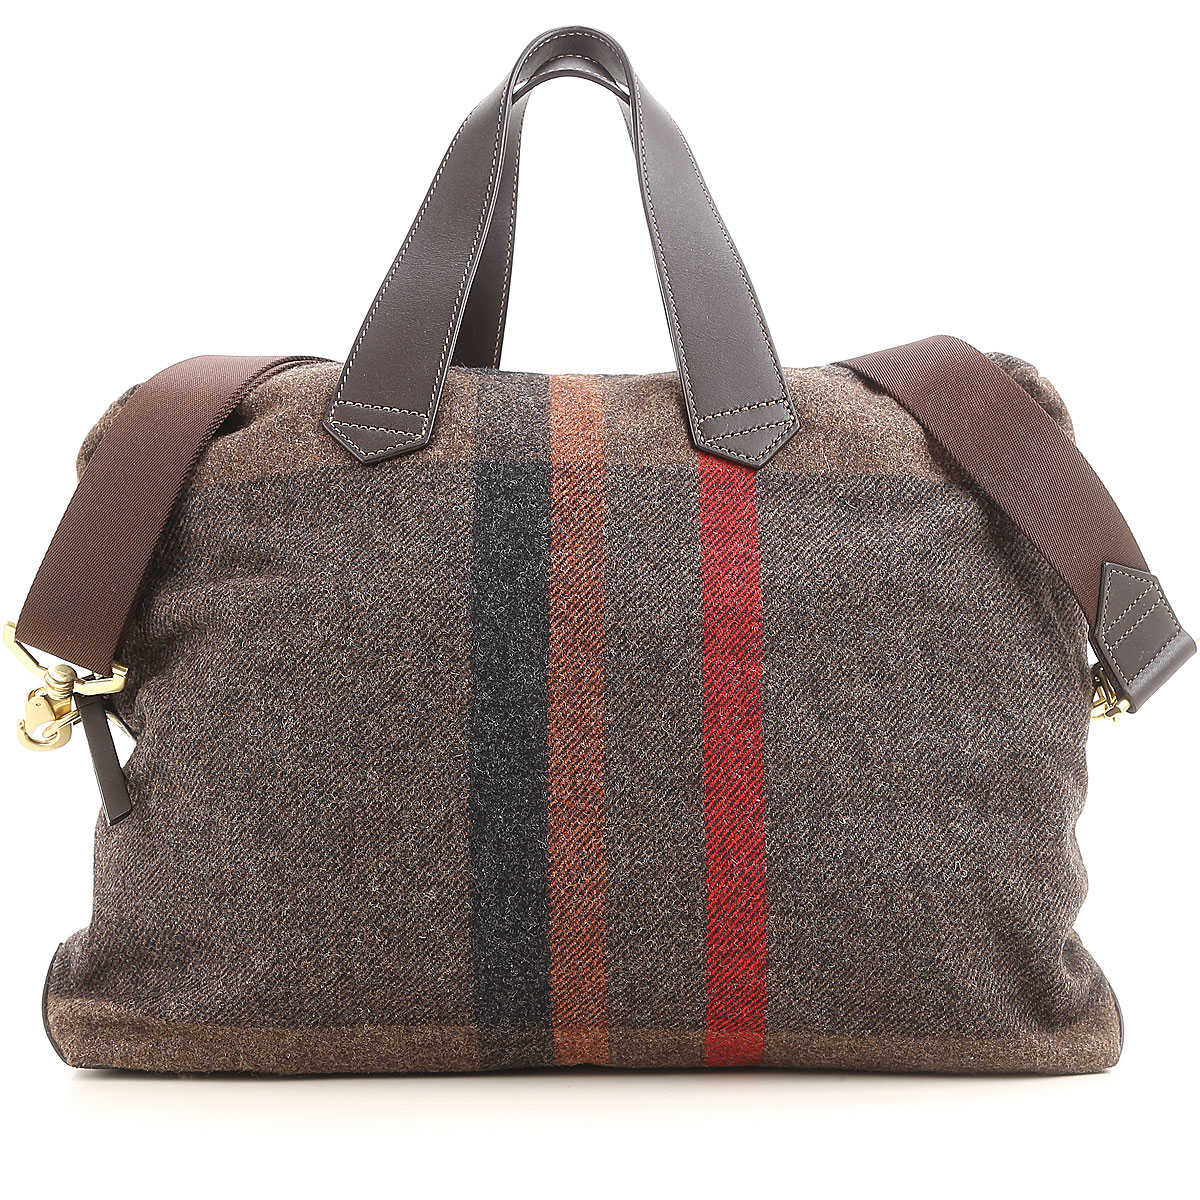 Paul Smith Totes On Sale in Outlet Brown SE - GOOFASH